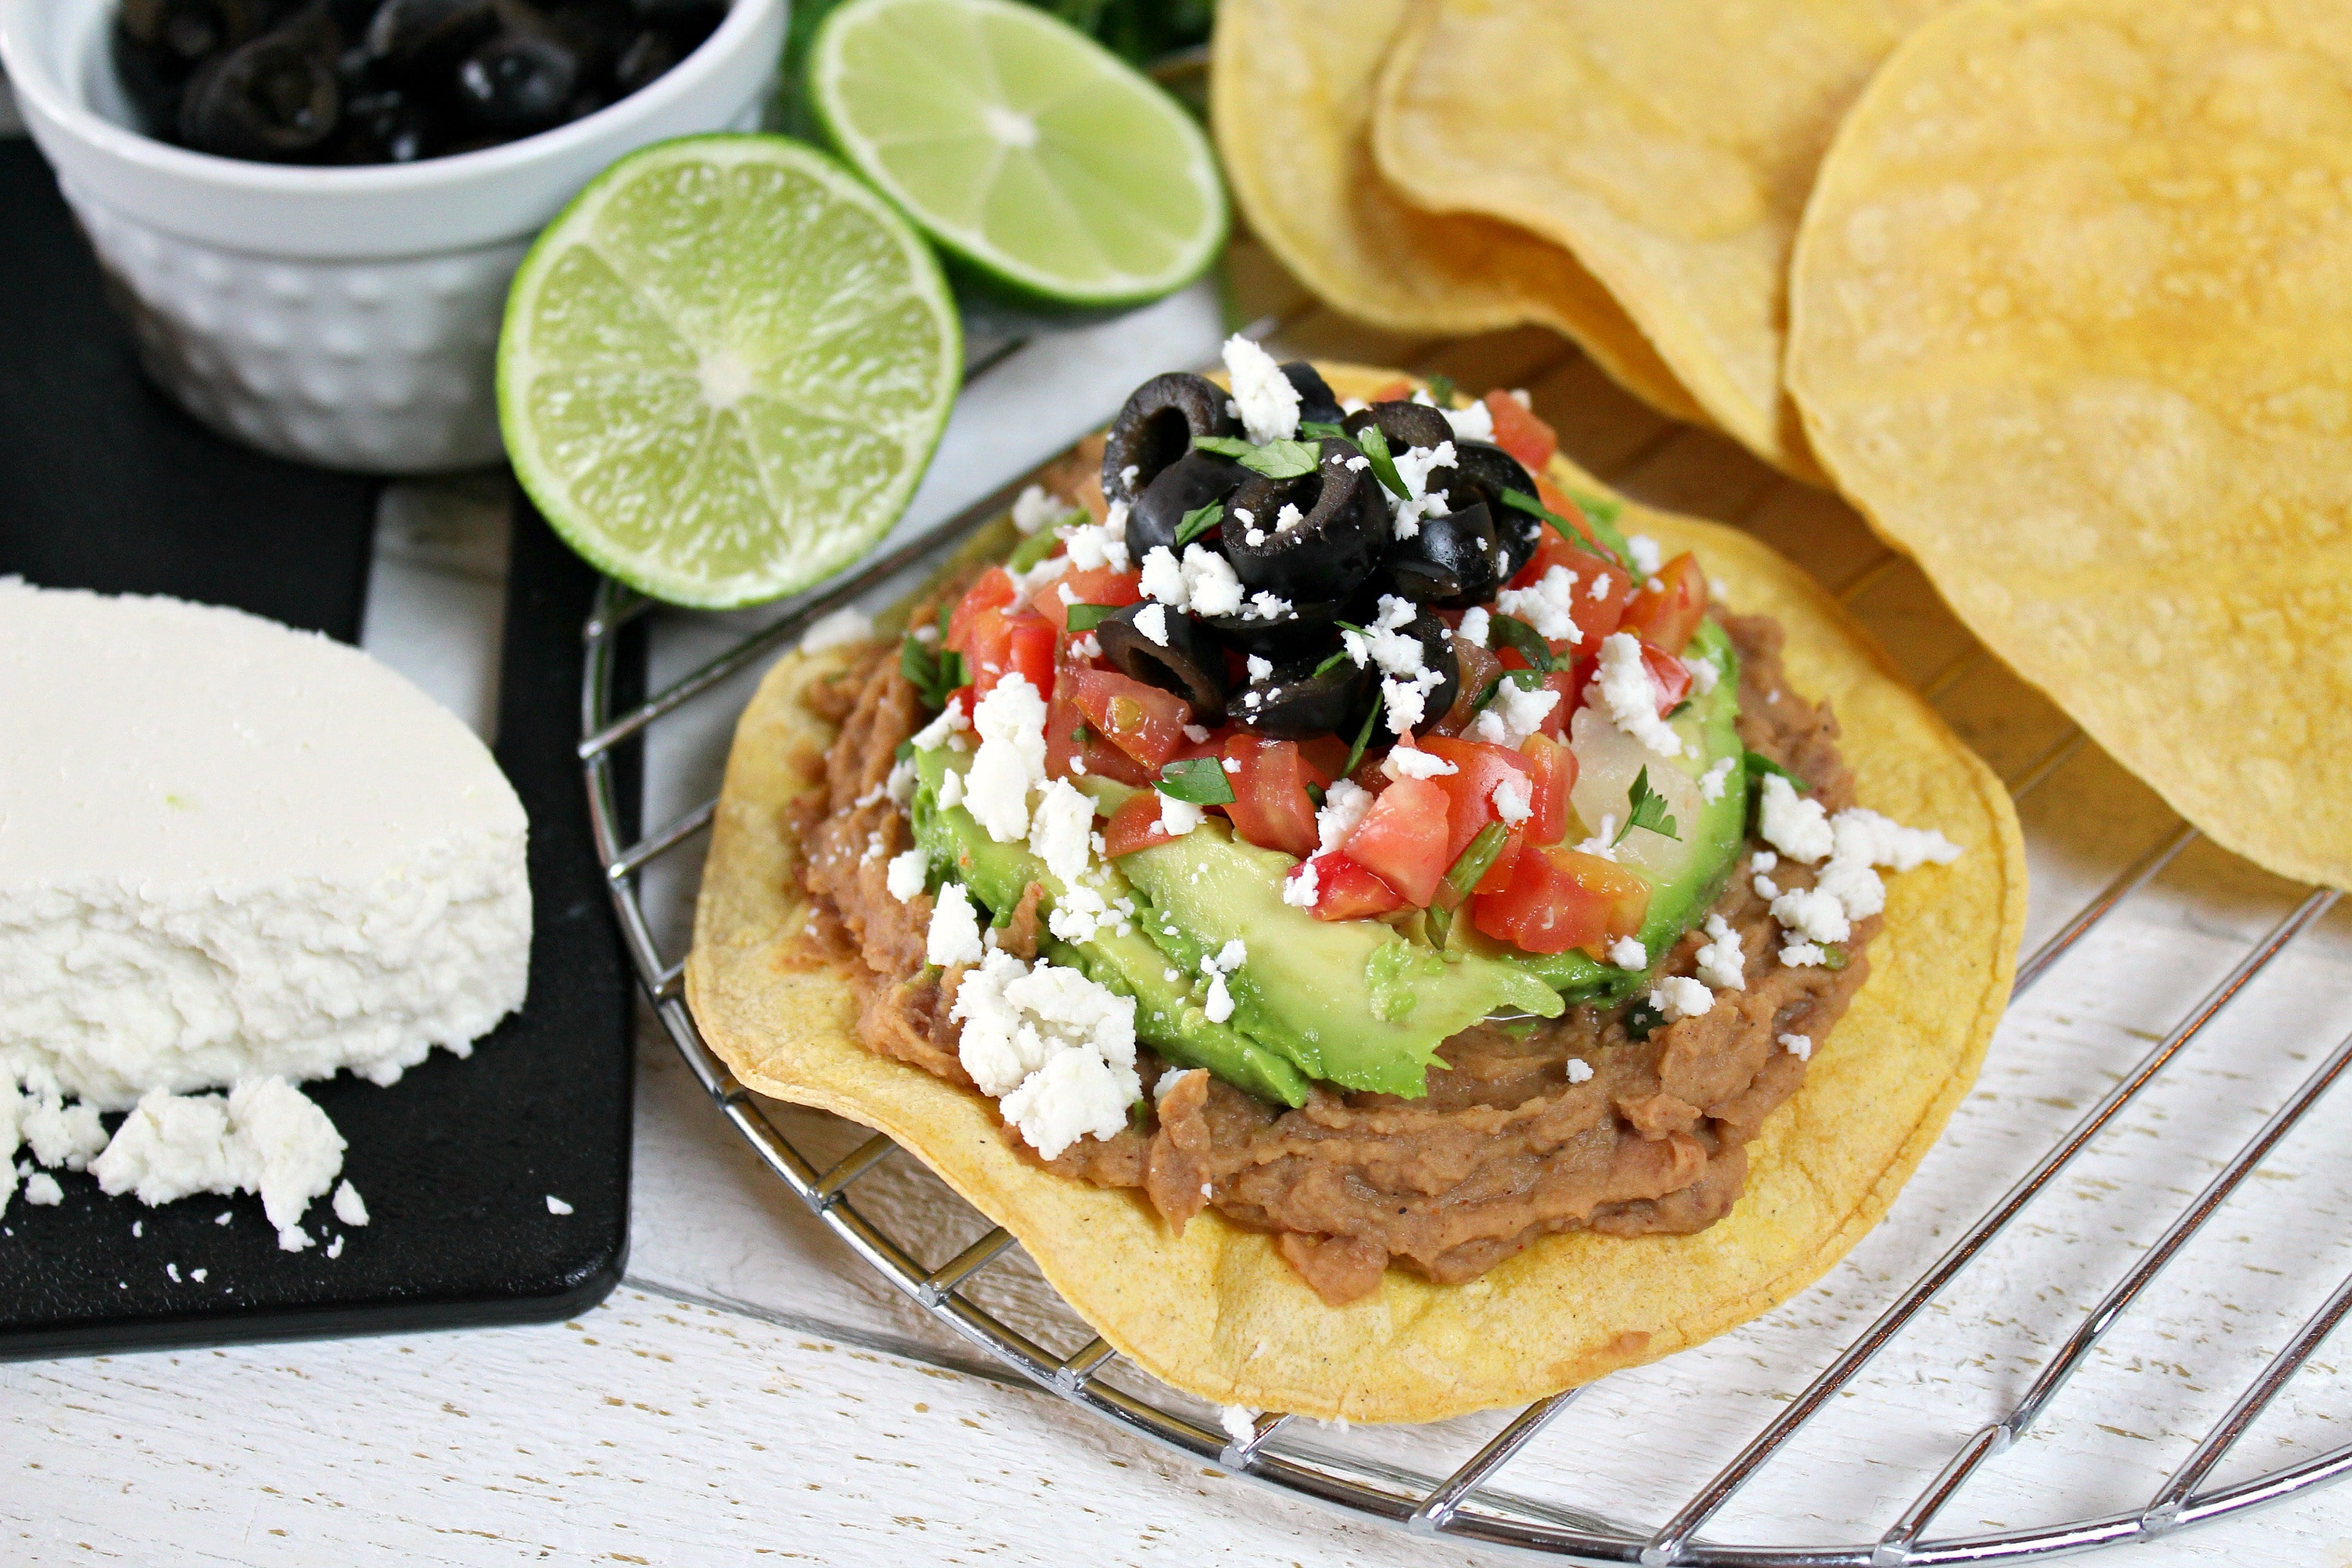 Assemble the easy, healthy vegetarian tostadas by topping them with the beans, vegetables and queso fresco.